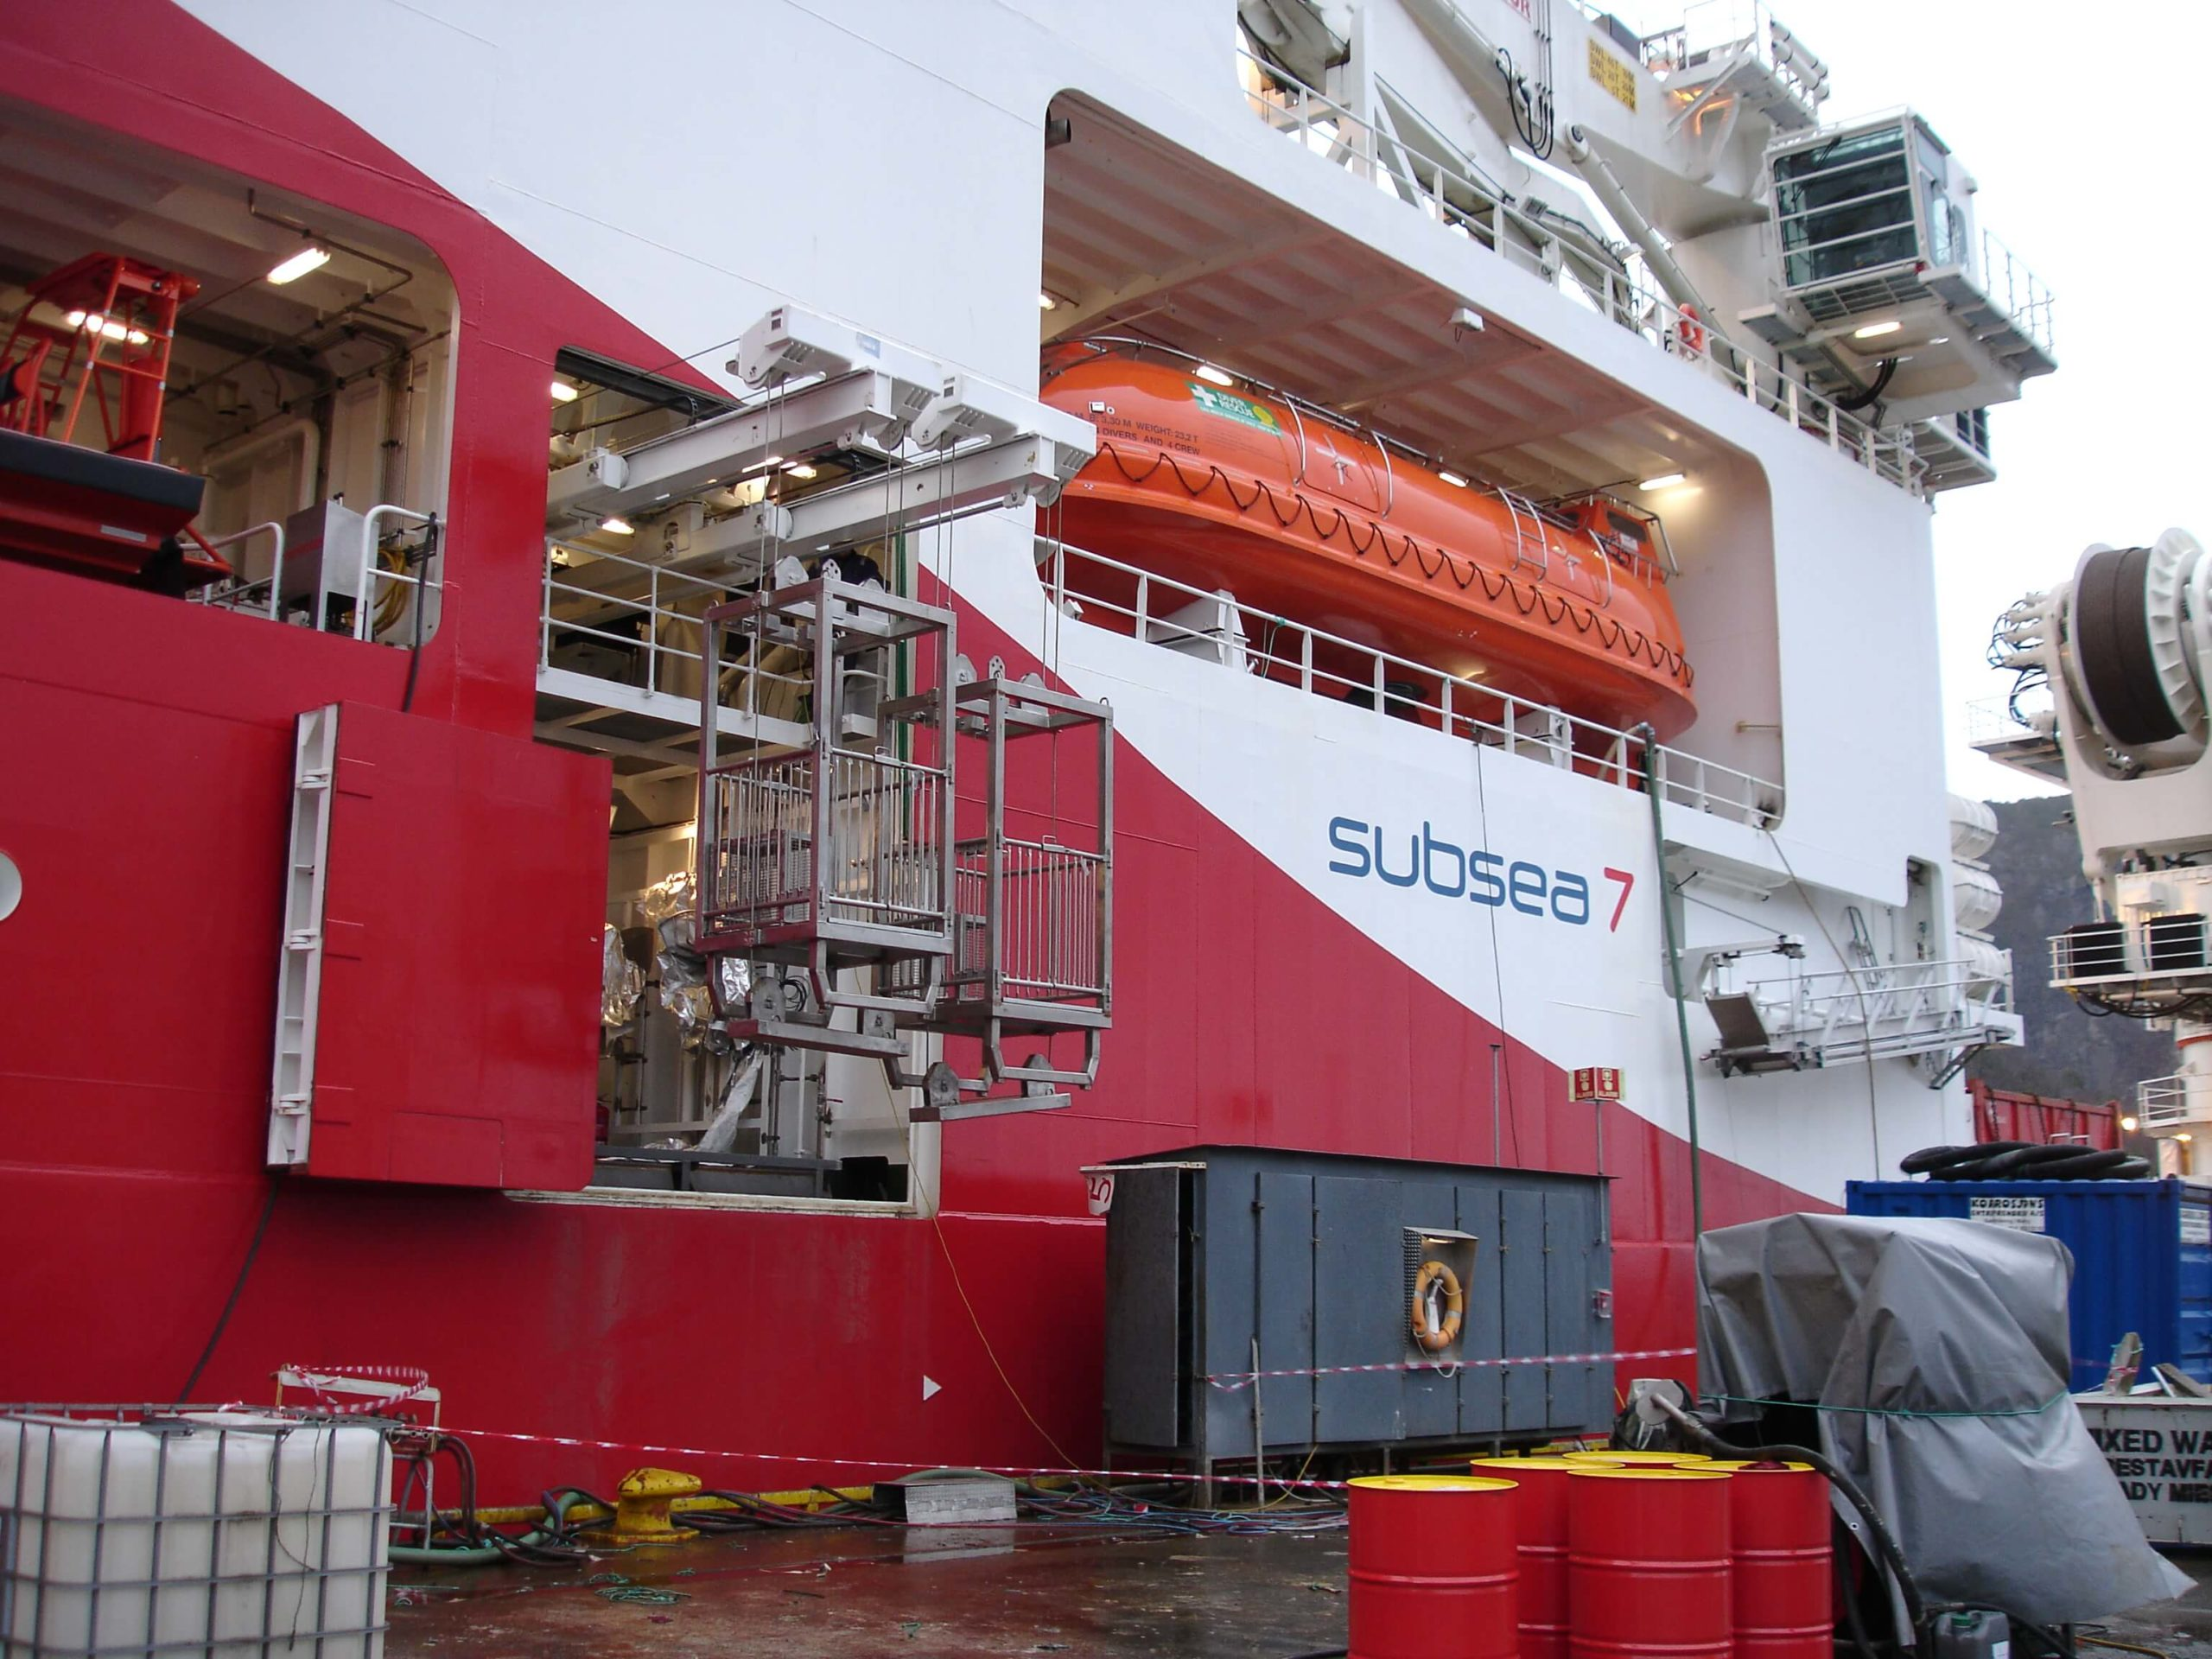 Offshore subsea 7